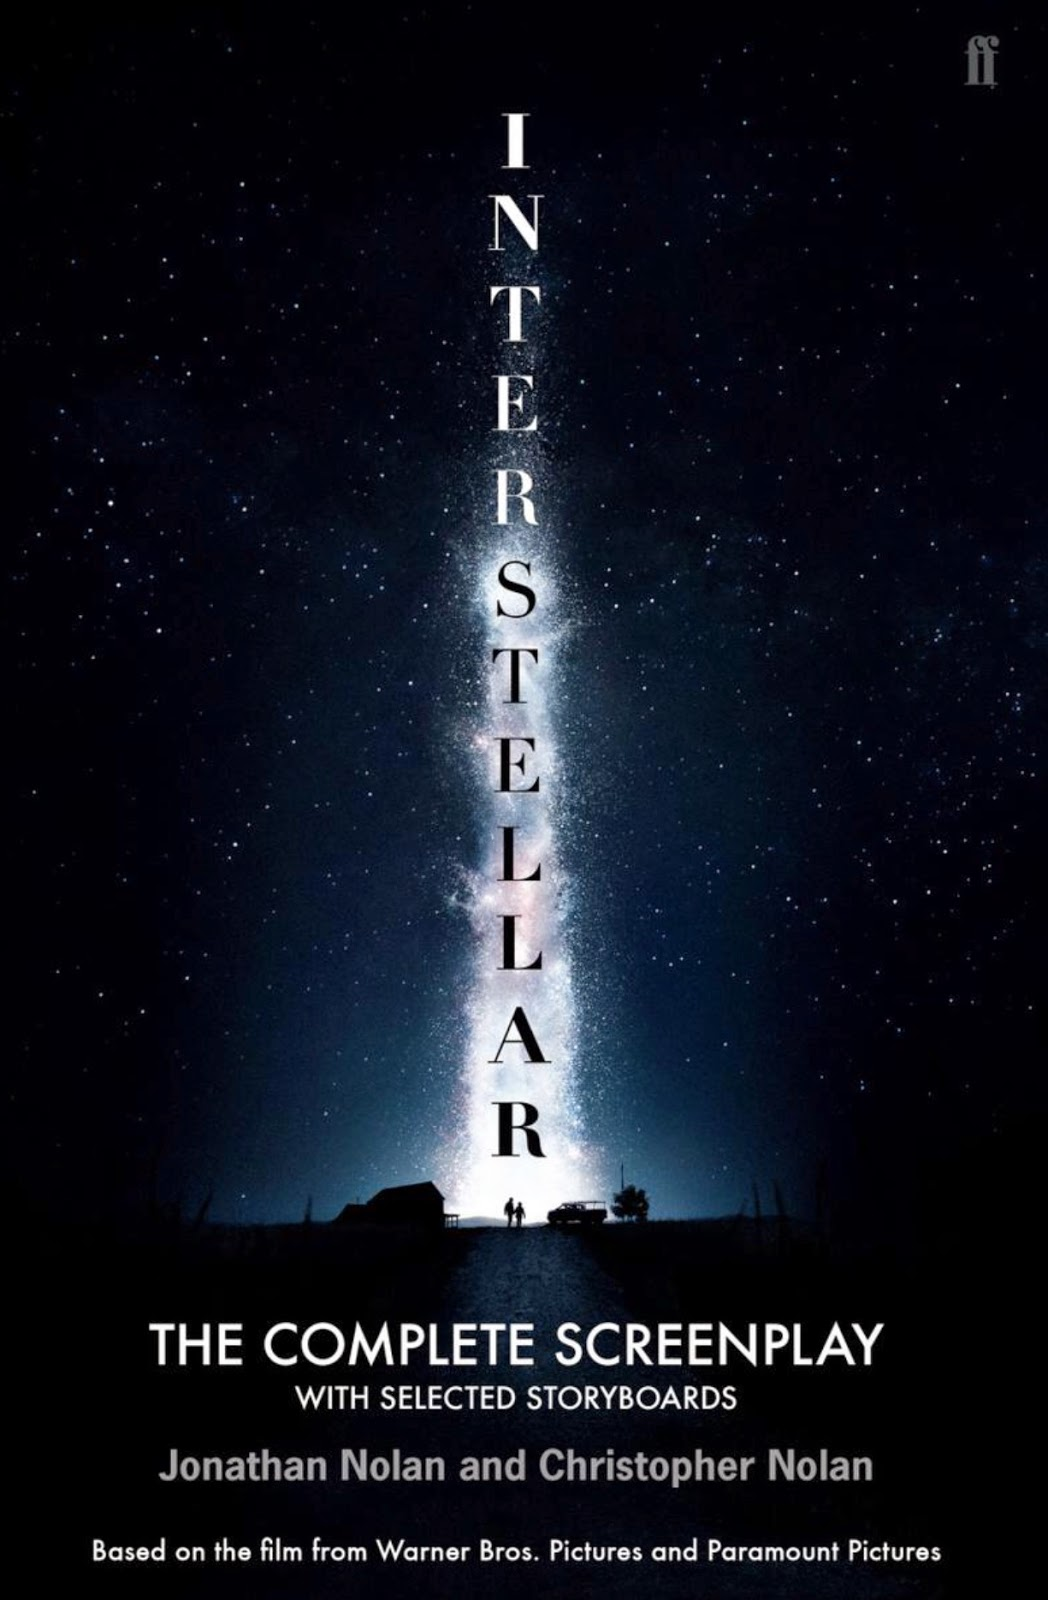 interstellar the complete screenplay with selected storyboards pdf